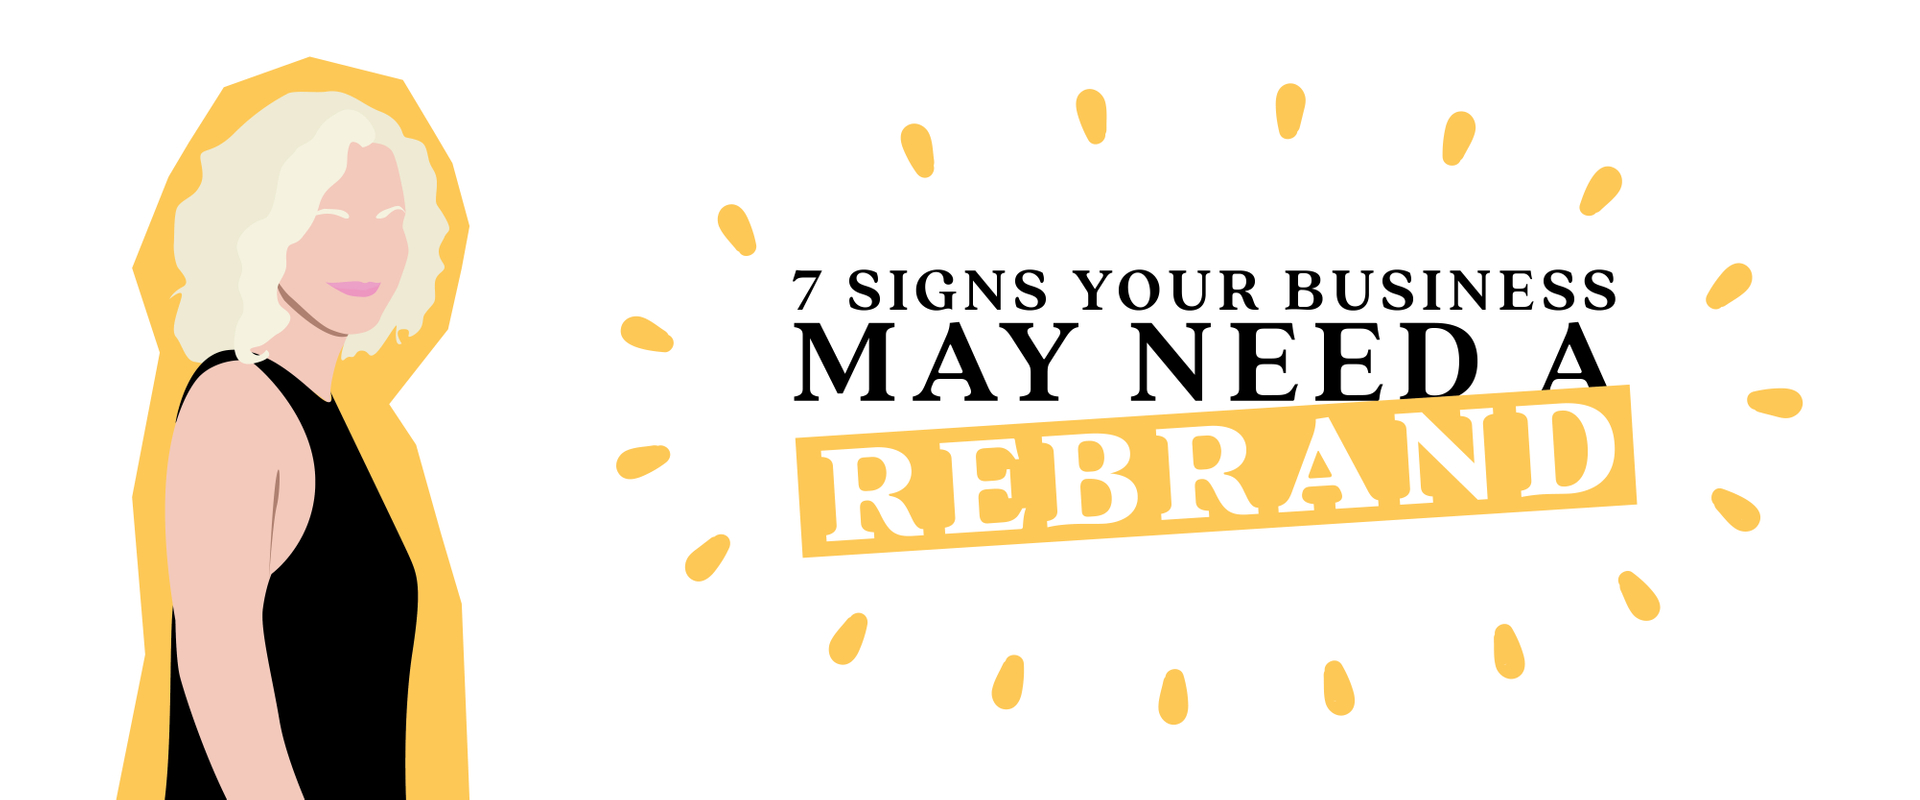 7 Signs Your Business May Need a Rebrand